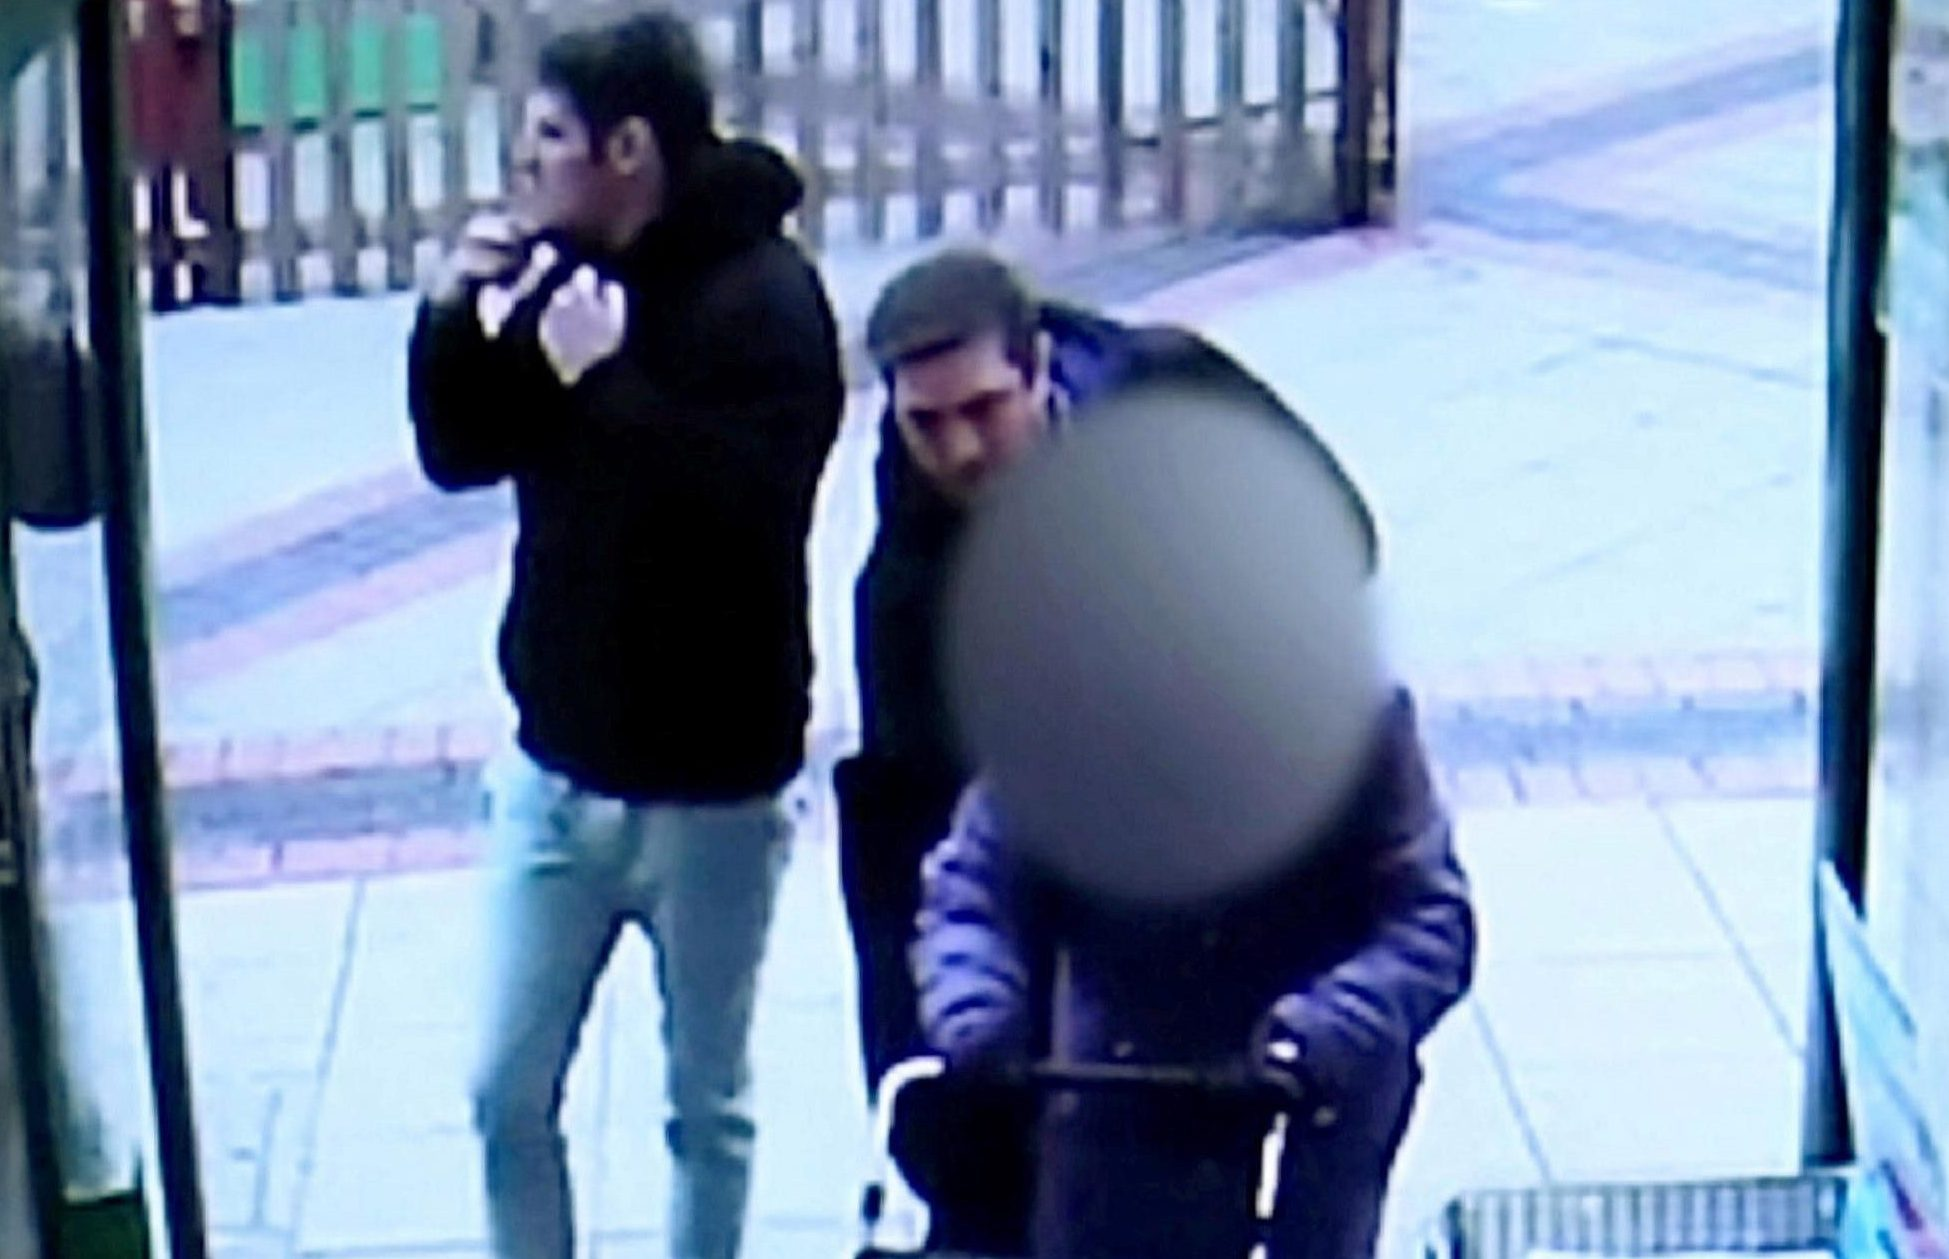 Sickening moment shameless pickpocket thief steals OAP's purse without her knowing as she goes shopping